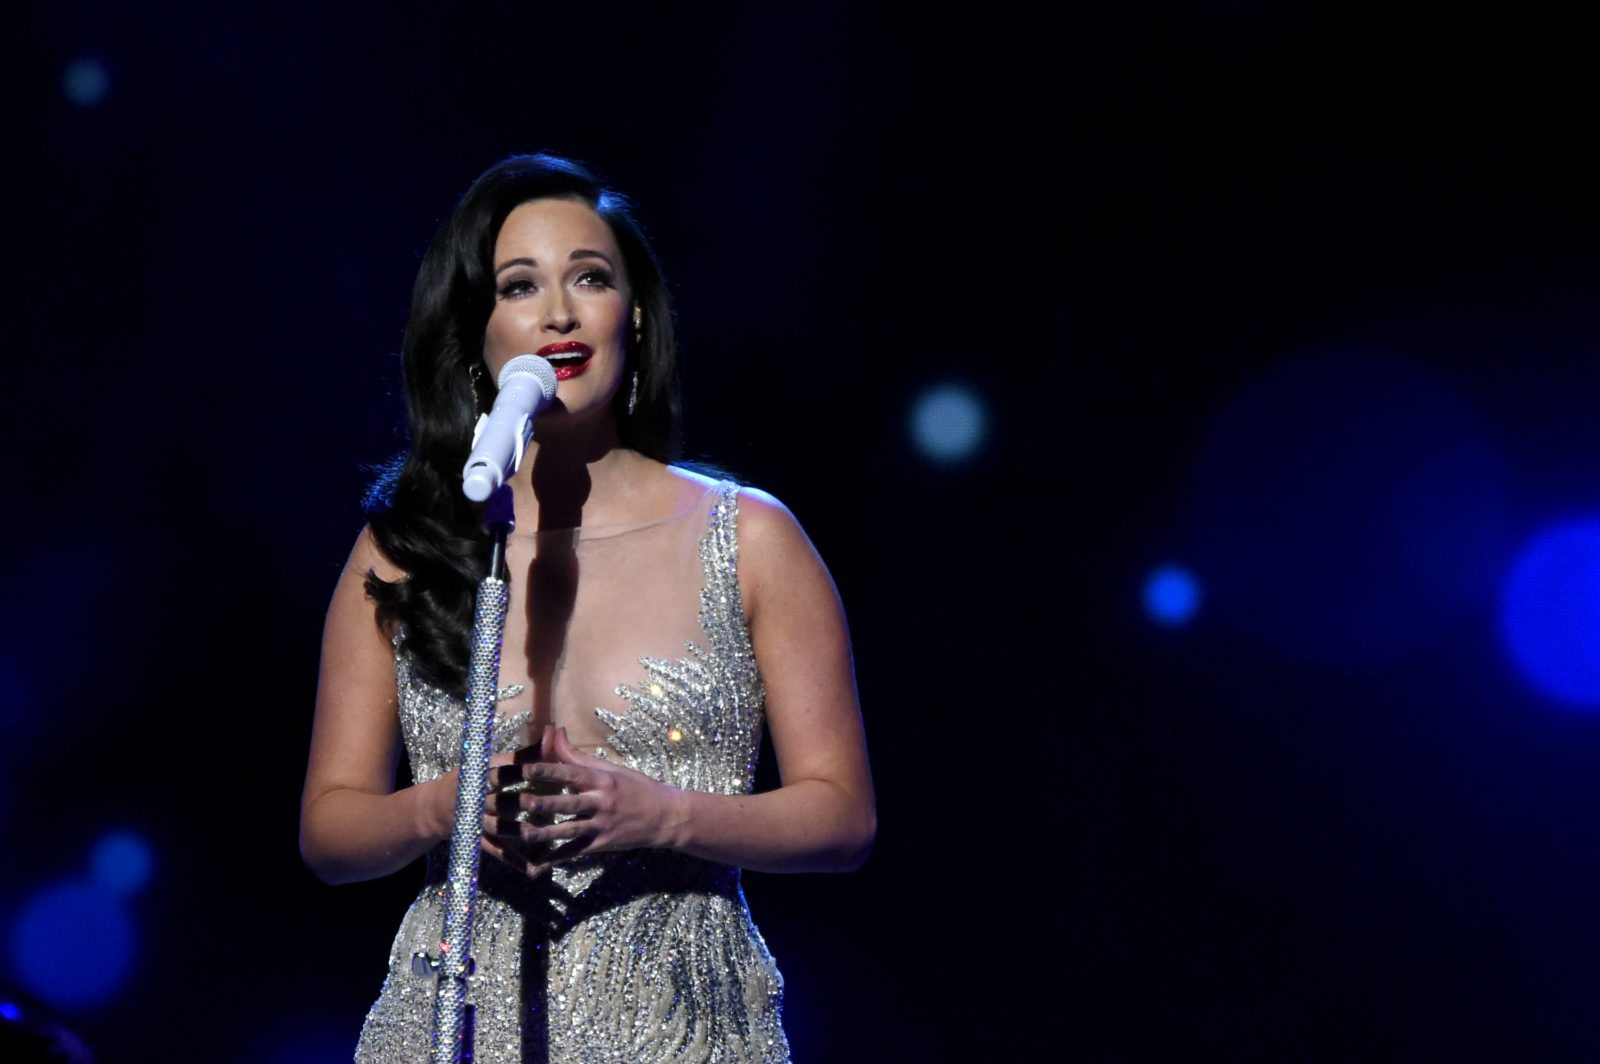 NASHVILLE, TN - NOVEMBER 08: Singer-songwriter Kacey Musgraves performs on stage during the CMA 2016 Country Christmas on November 8, 2016 in Nashville, Tennessee. (Photo by Rick Diamond/Getty Images)